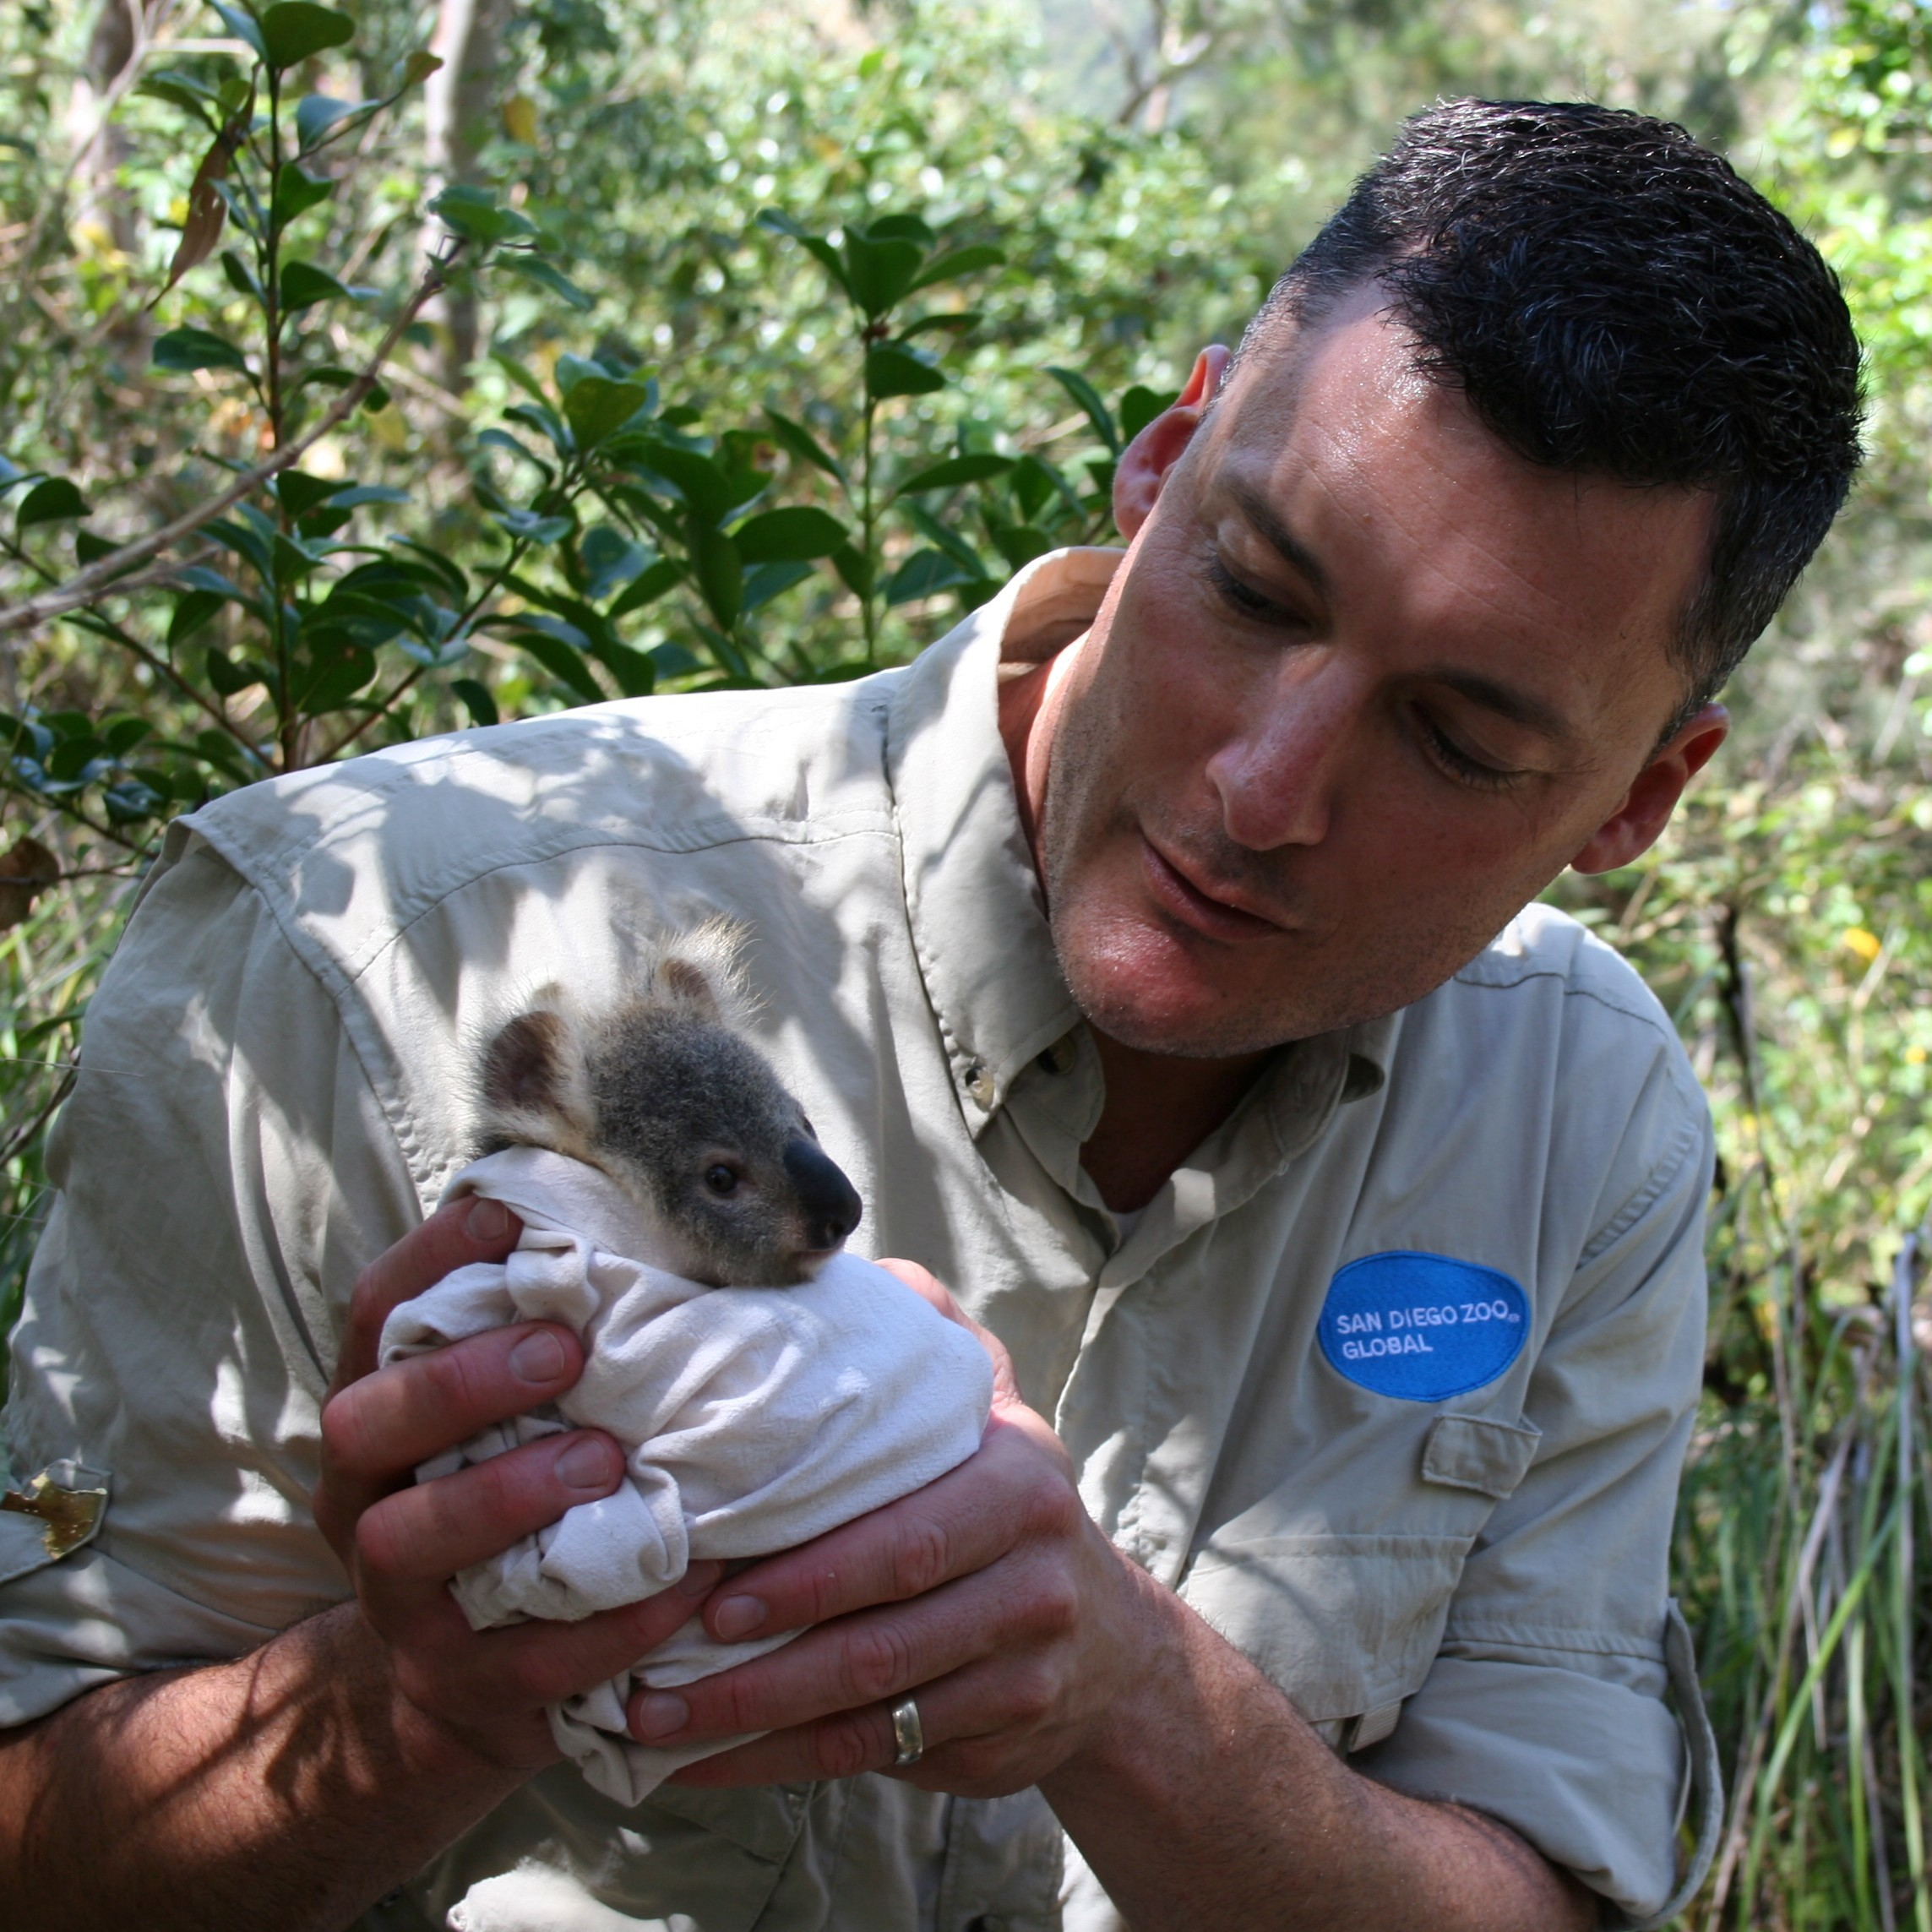 San Diego Zoo' Global Supports Wildlife Conservation